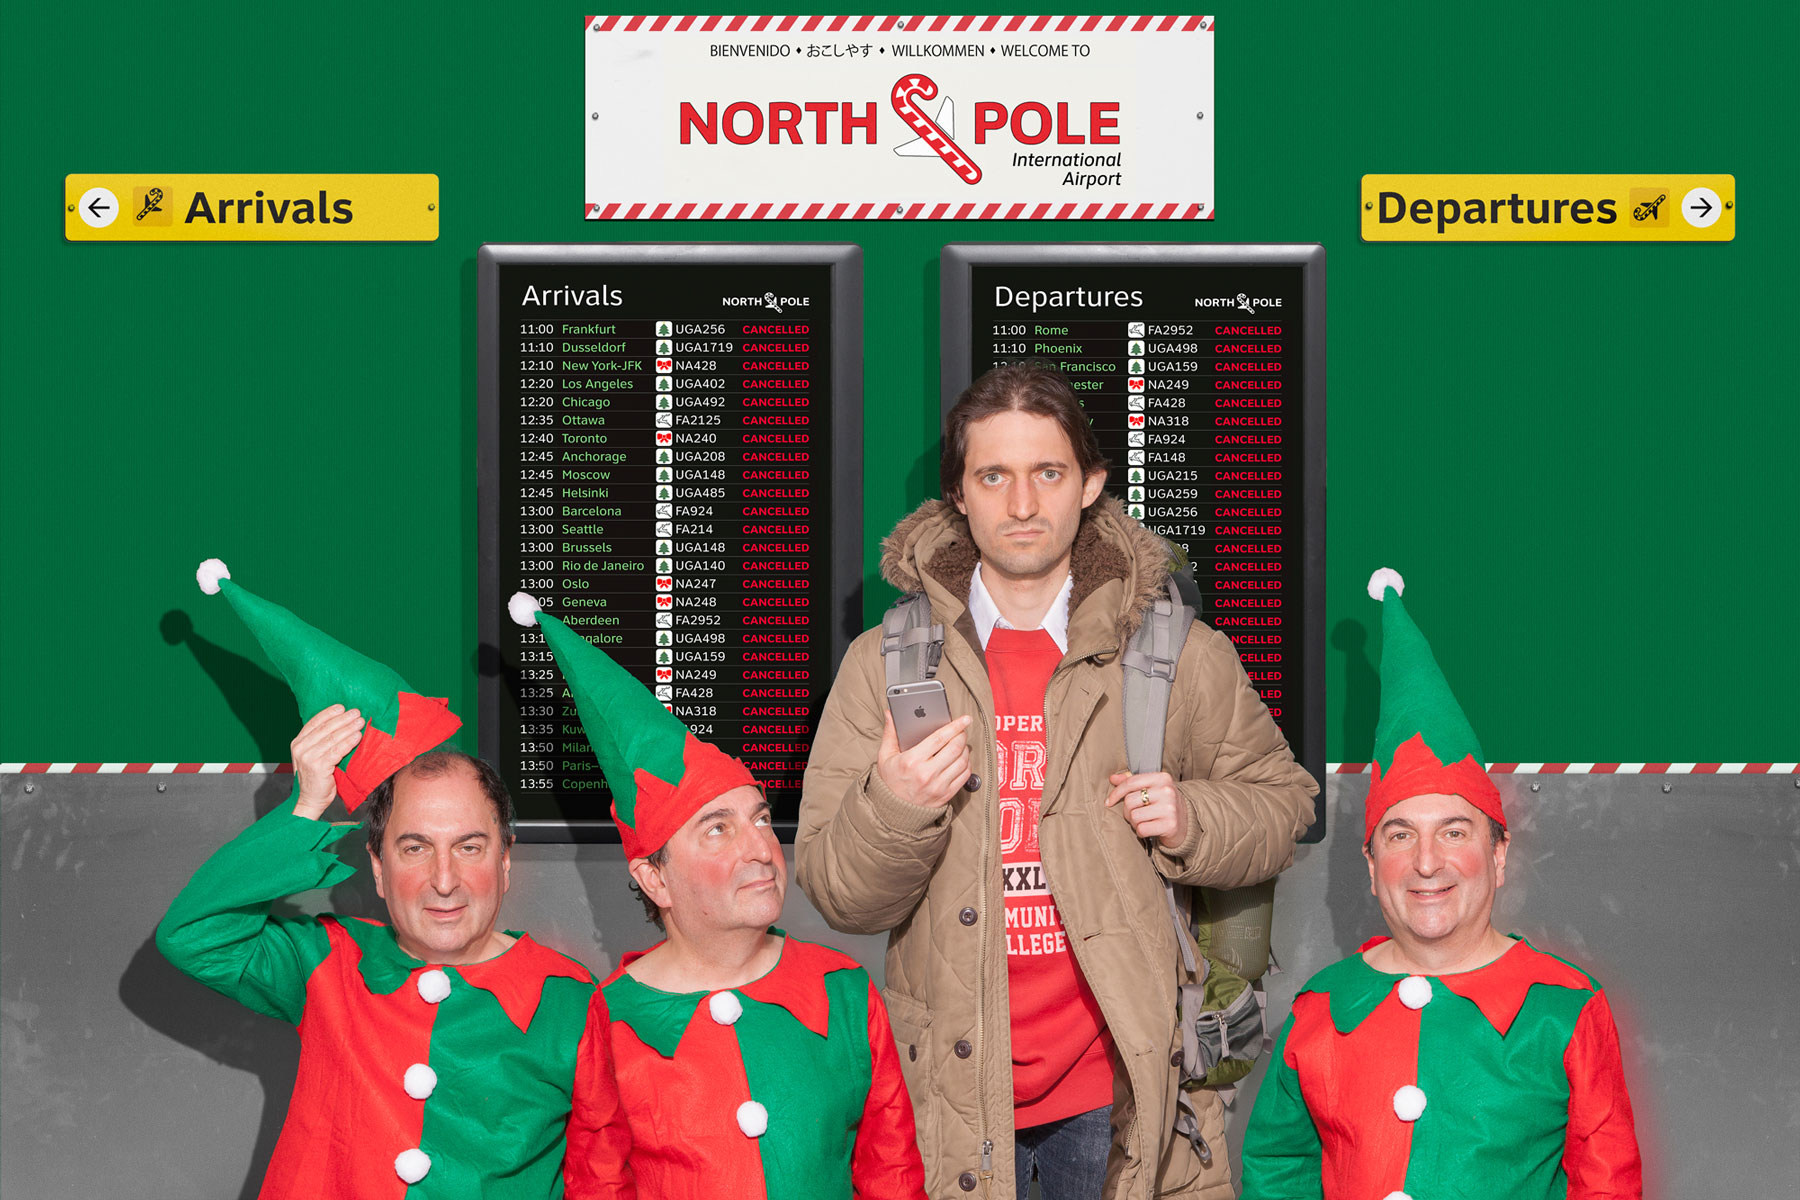 pissed-dude-in-airport-with-elves